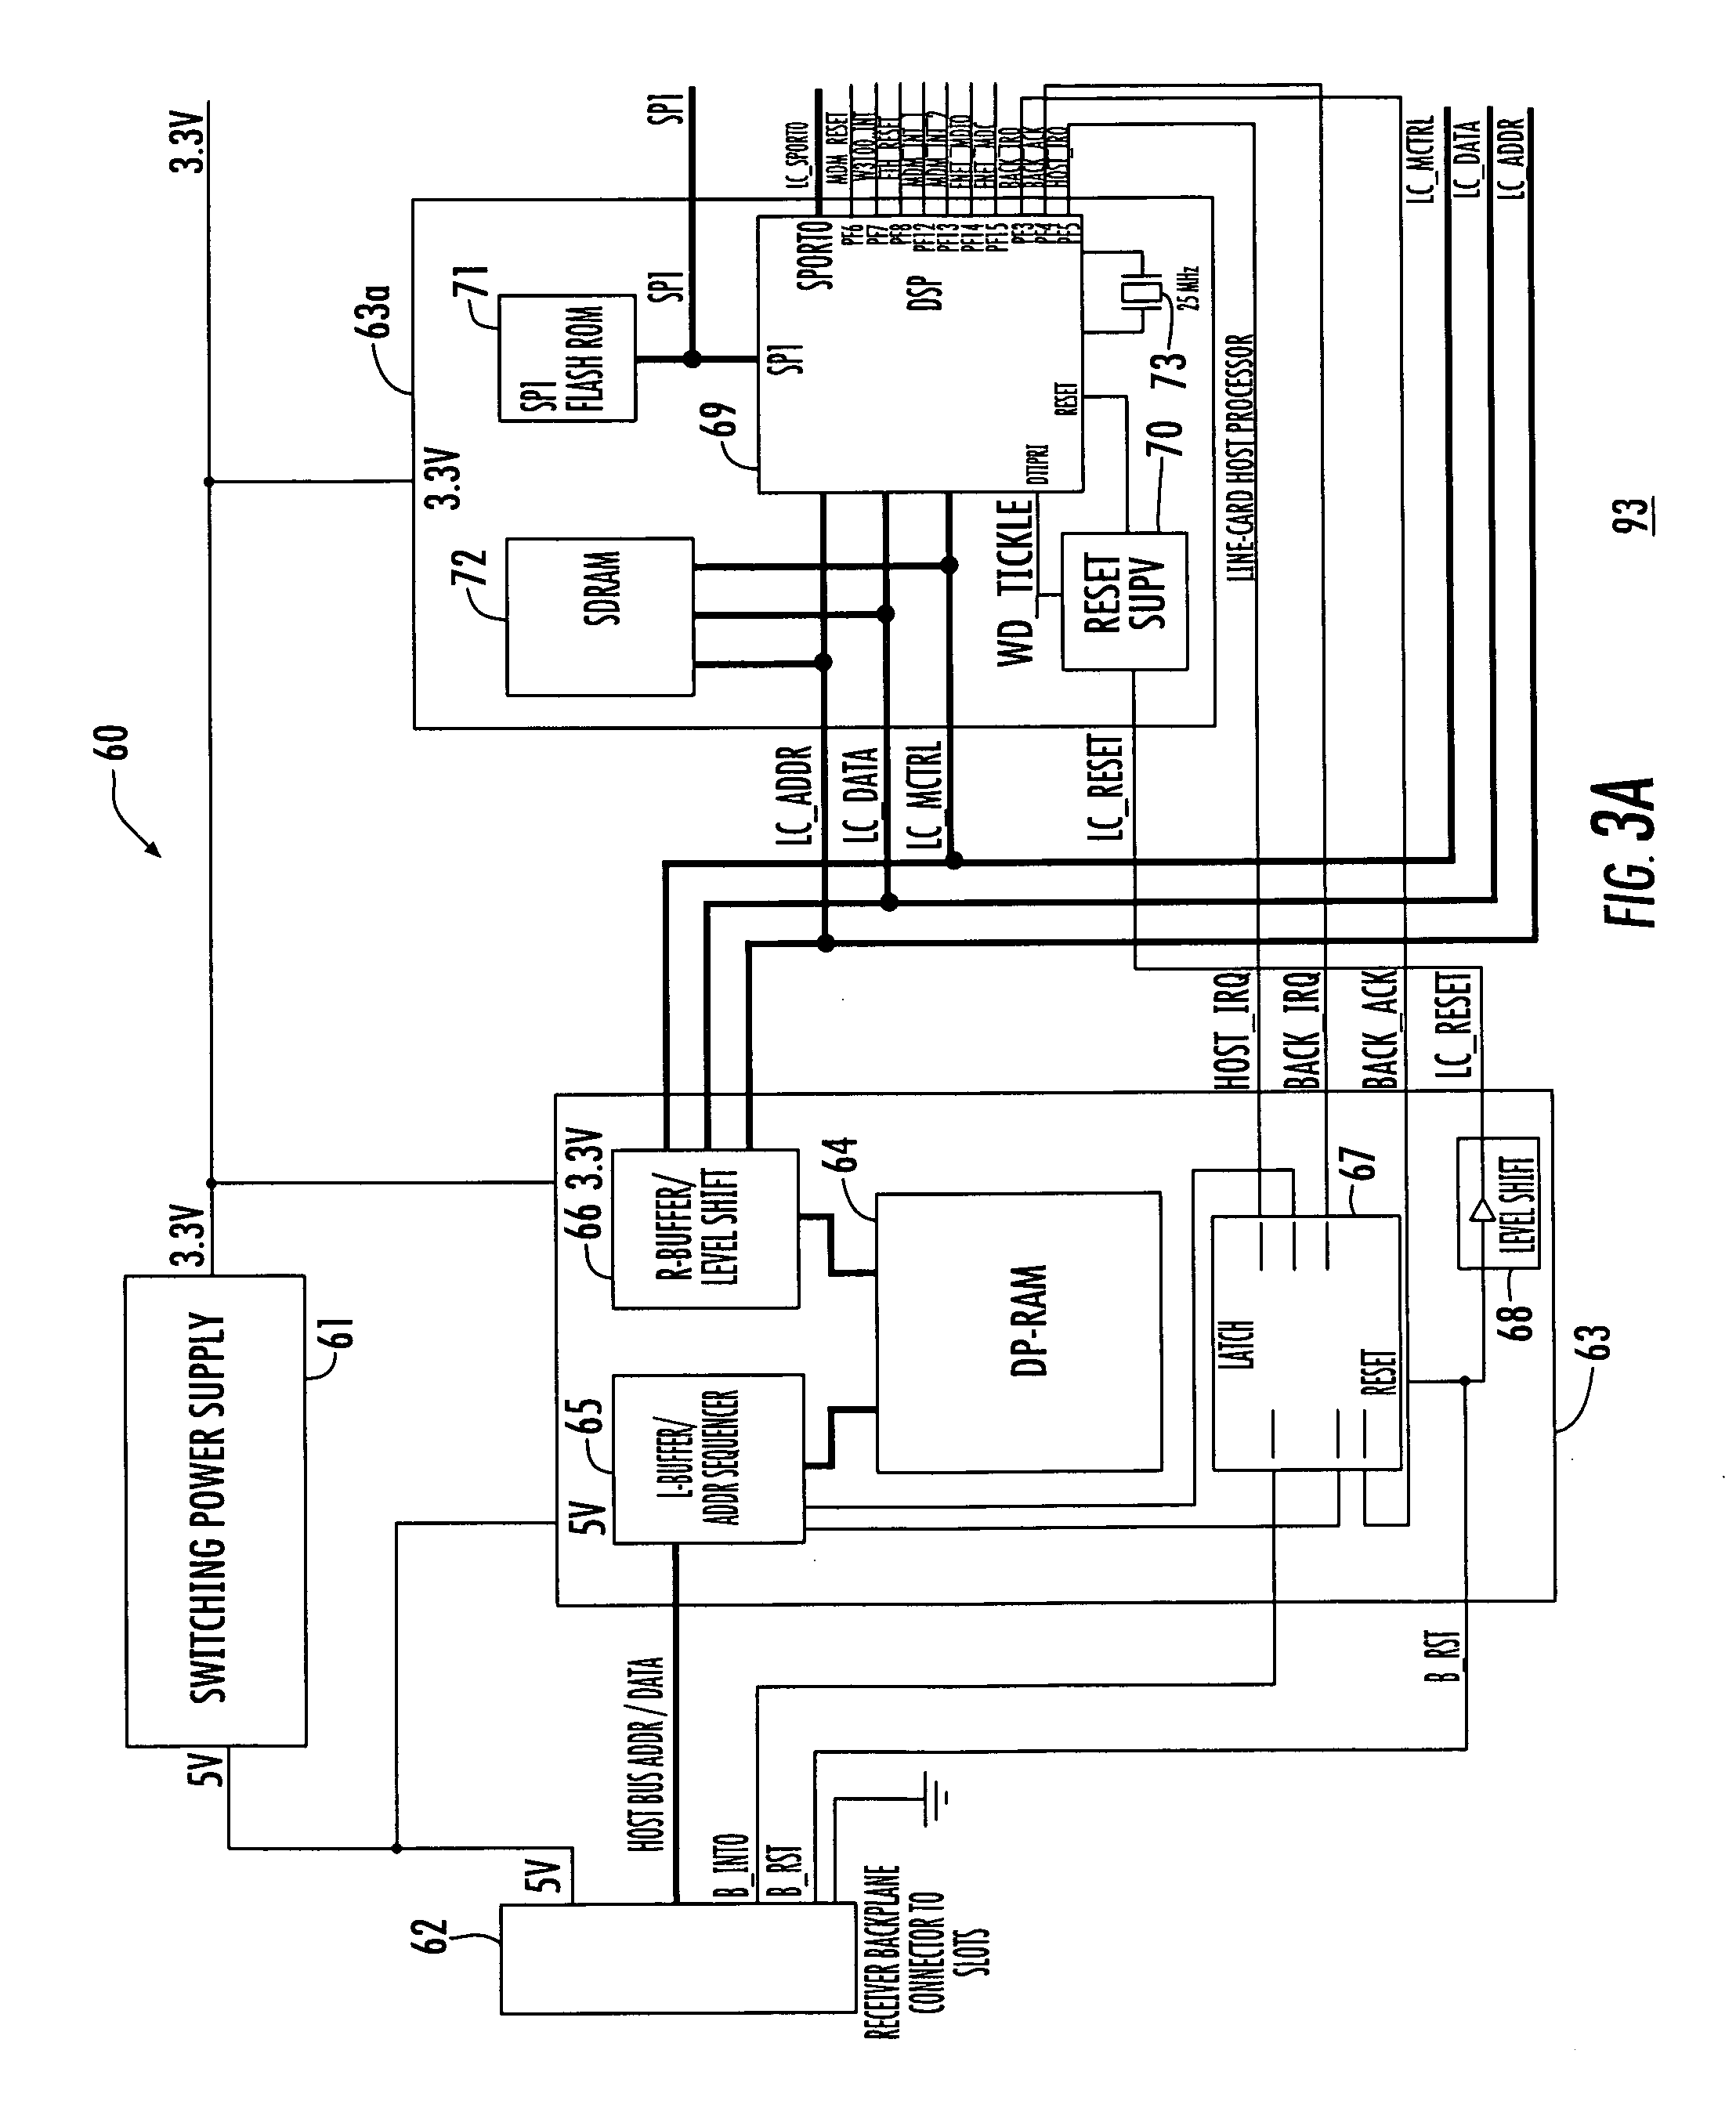 US20090058630A1 20090305 D00004?resize\\\\\\\=665%2C814 goodman sequencer wiring diagram fan carrier heat pump schematic goodman electric furnace wiring diagram at virtualis.co